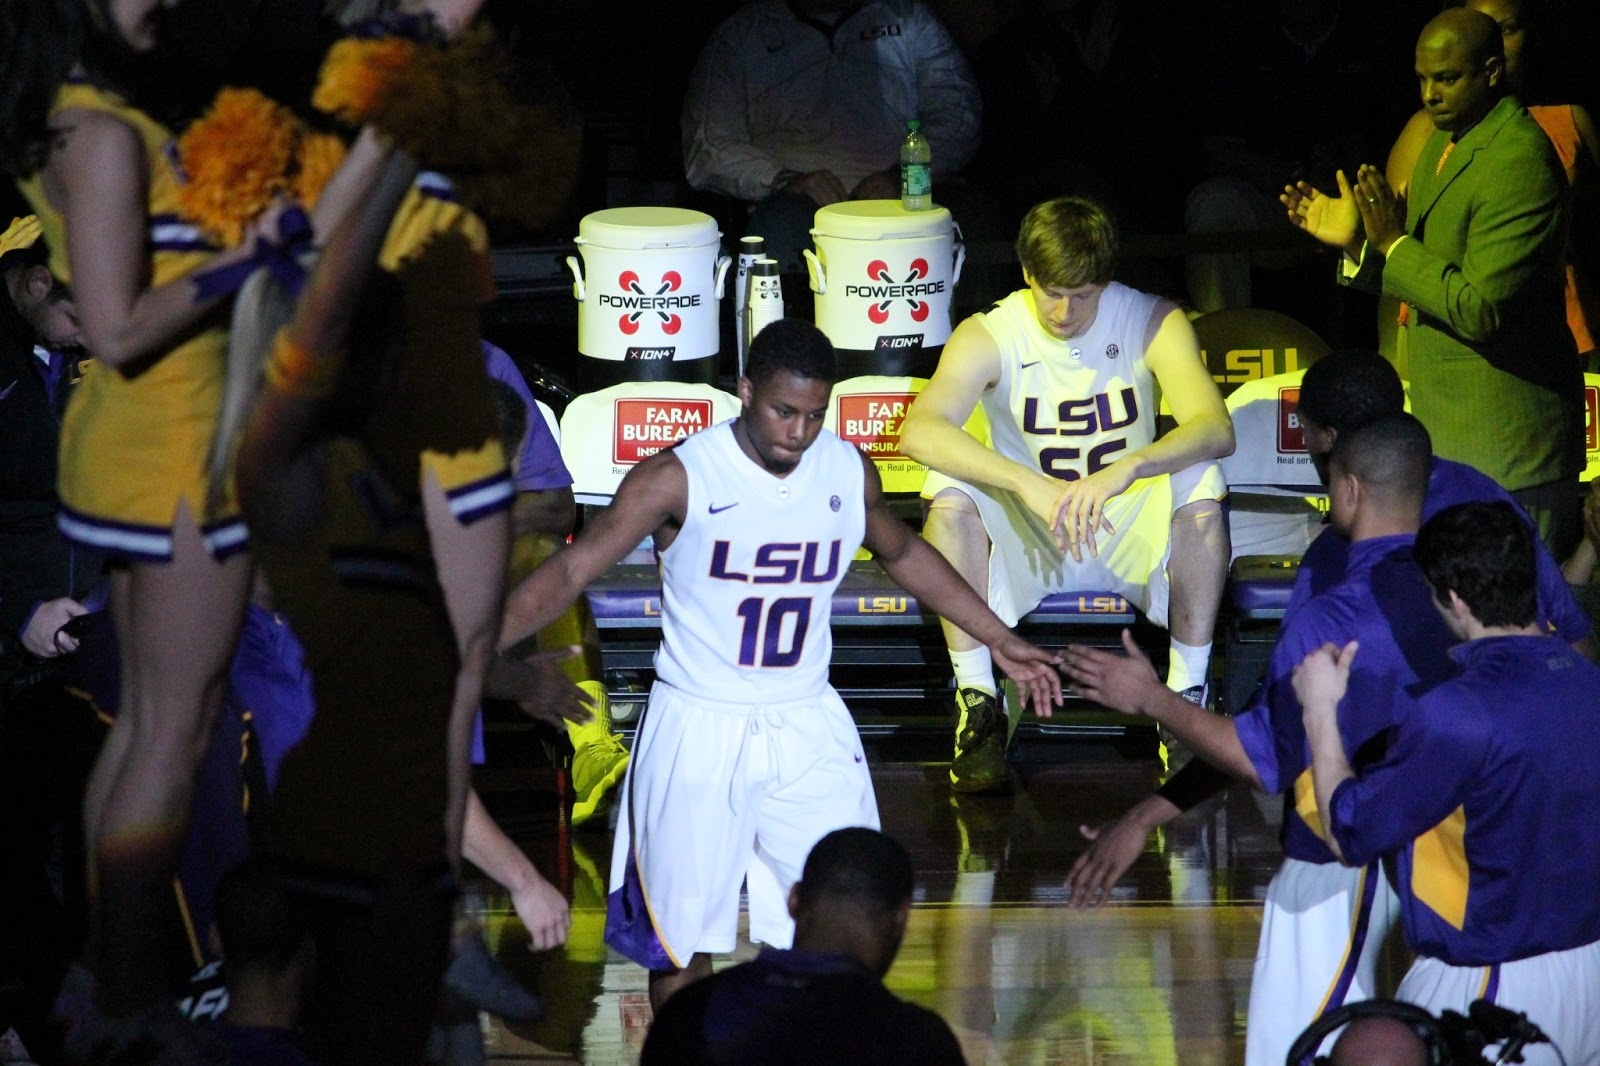 Andre Stringer is LSU's only 4th year player this season.